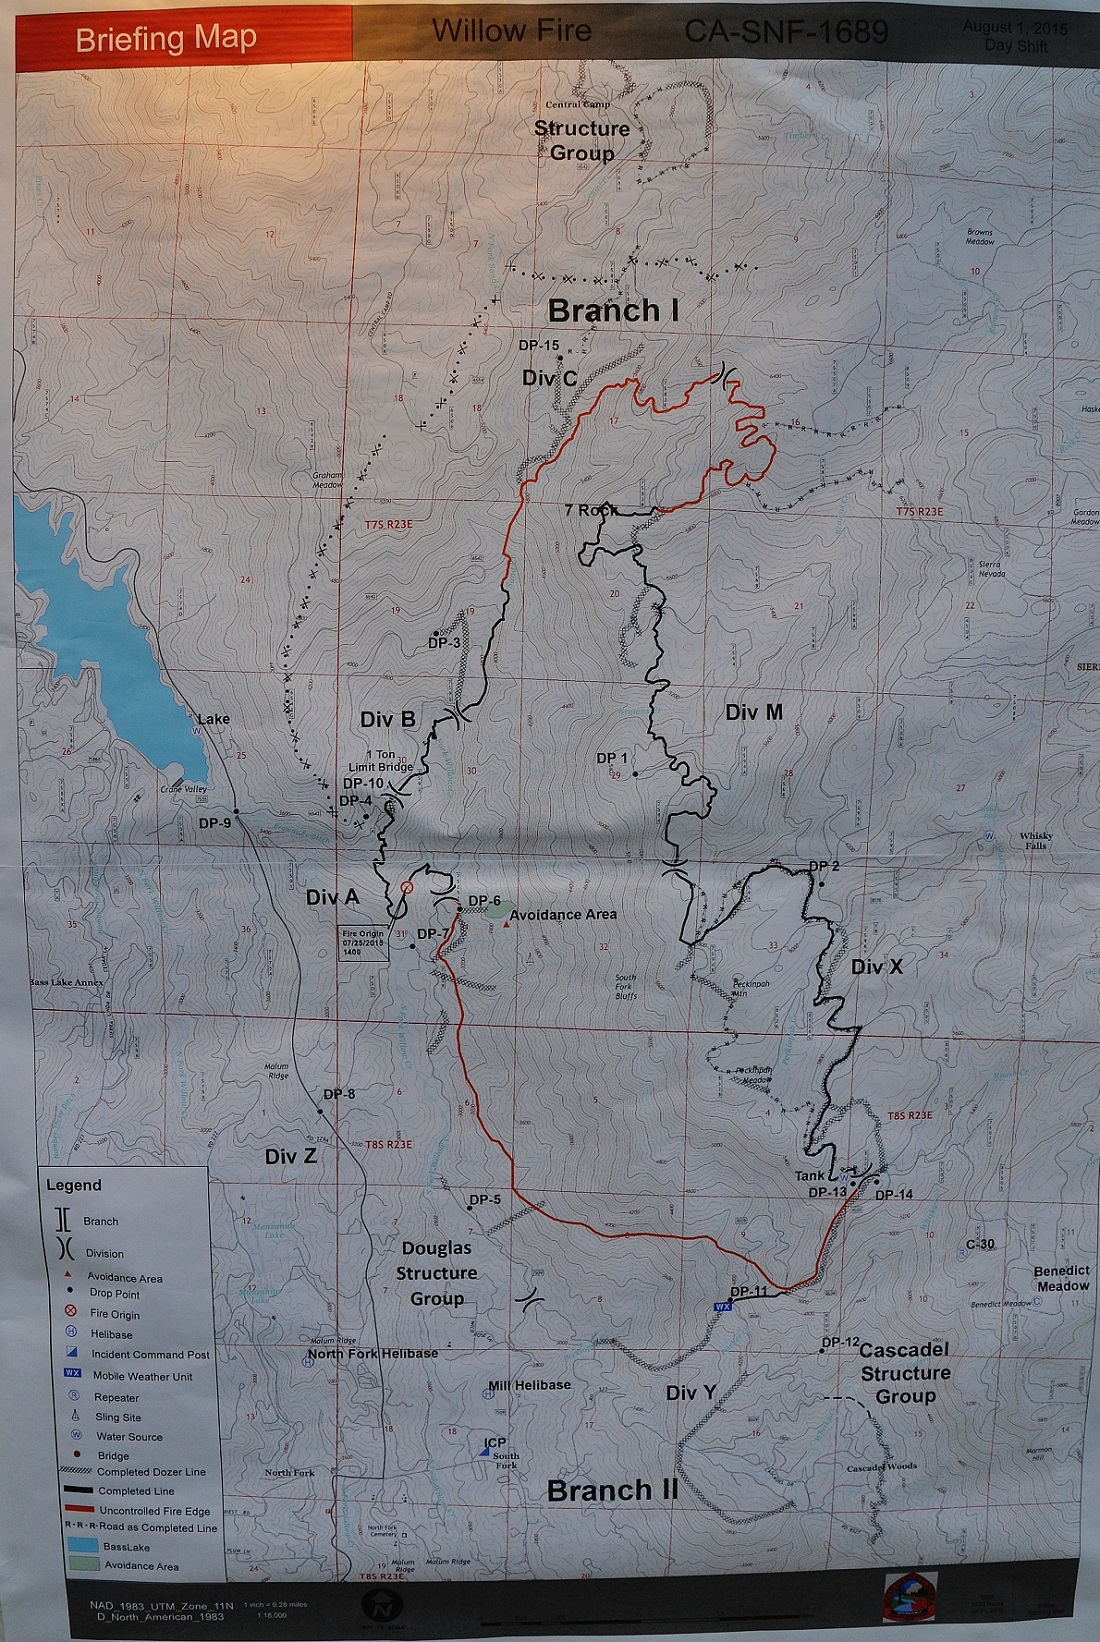 Willow Fire perimeter map 8-1-15 6 am